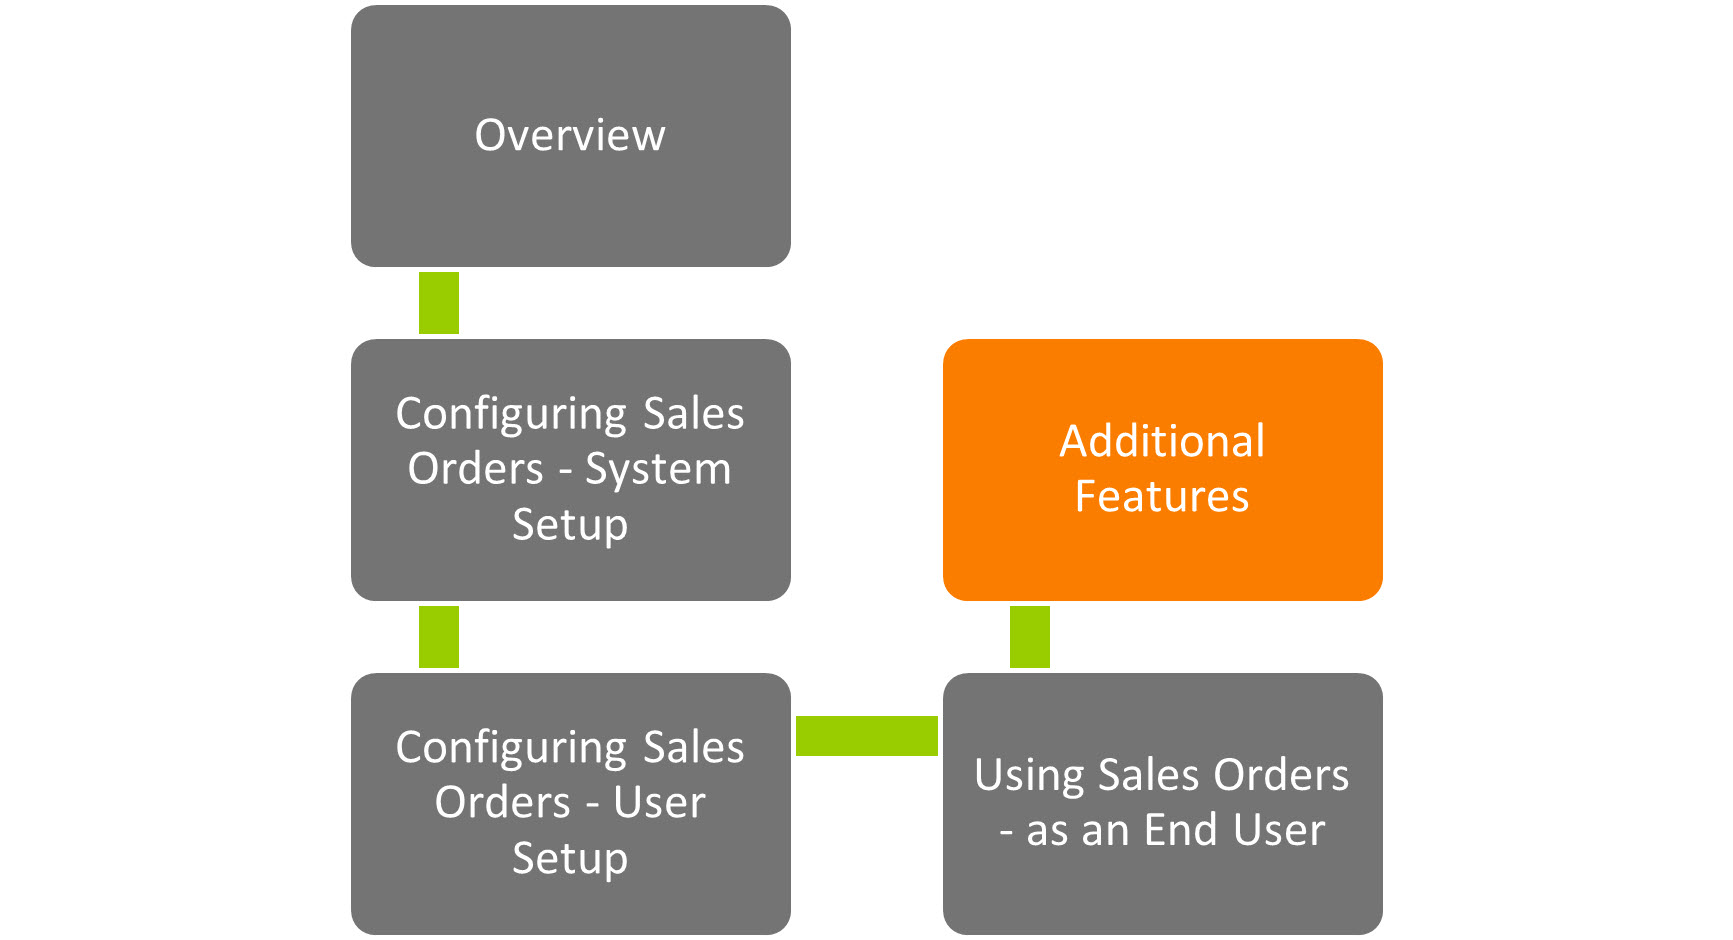 Sicon WAP Sales Order Help and User Guide - Sales Order HUG Section 21 Image 1